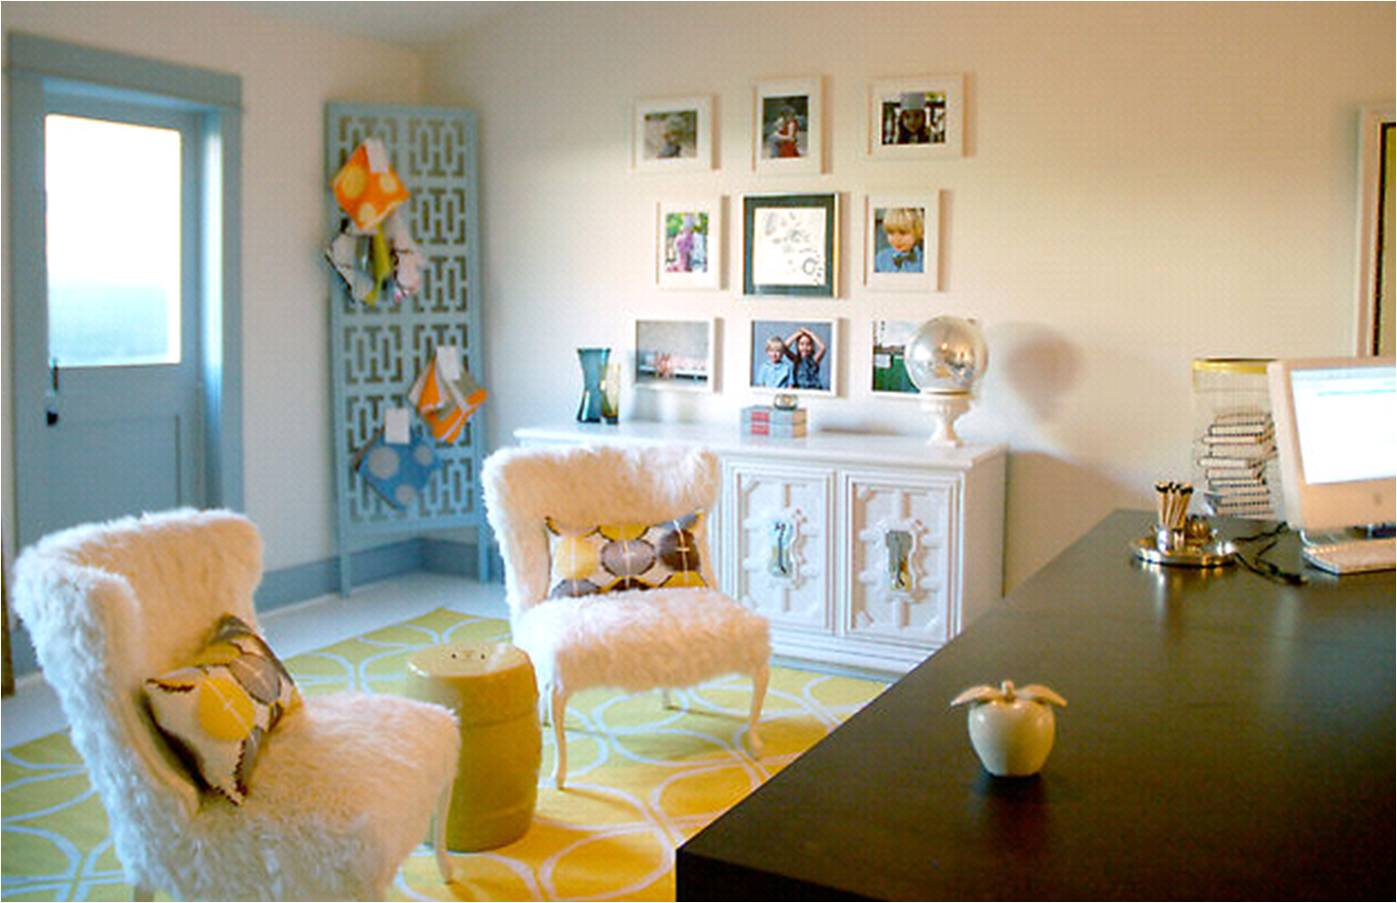 the sister sophisticate: One Cute Office Inspiration